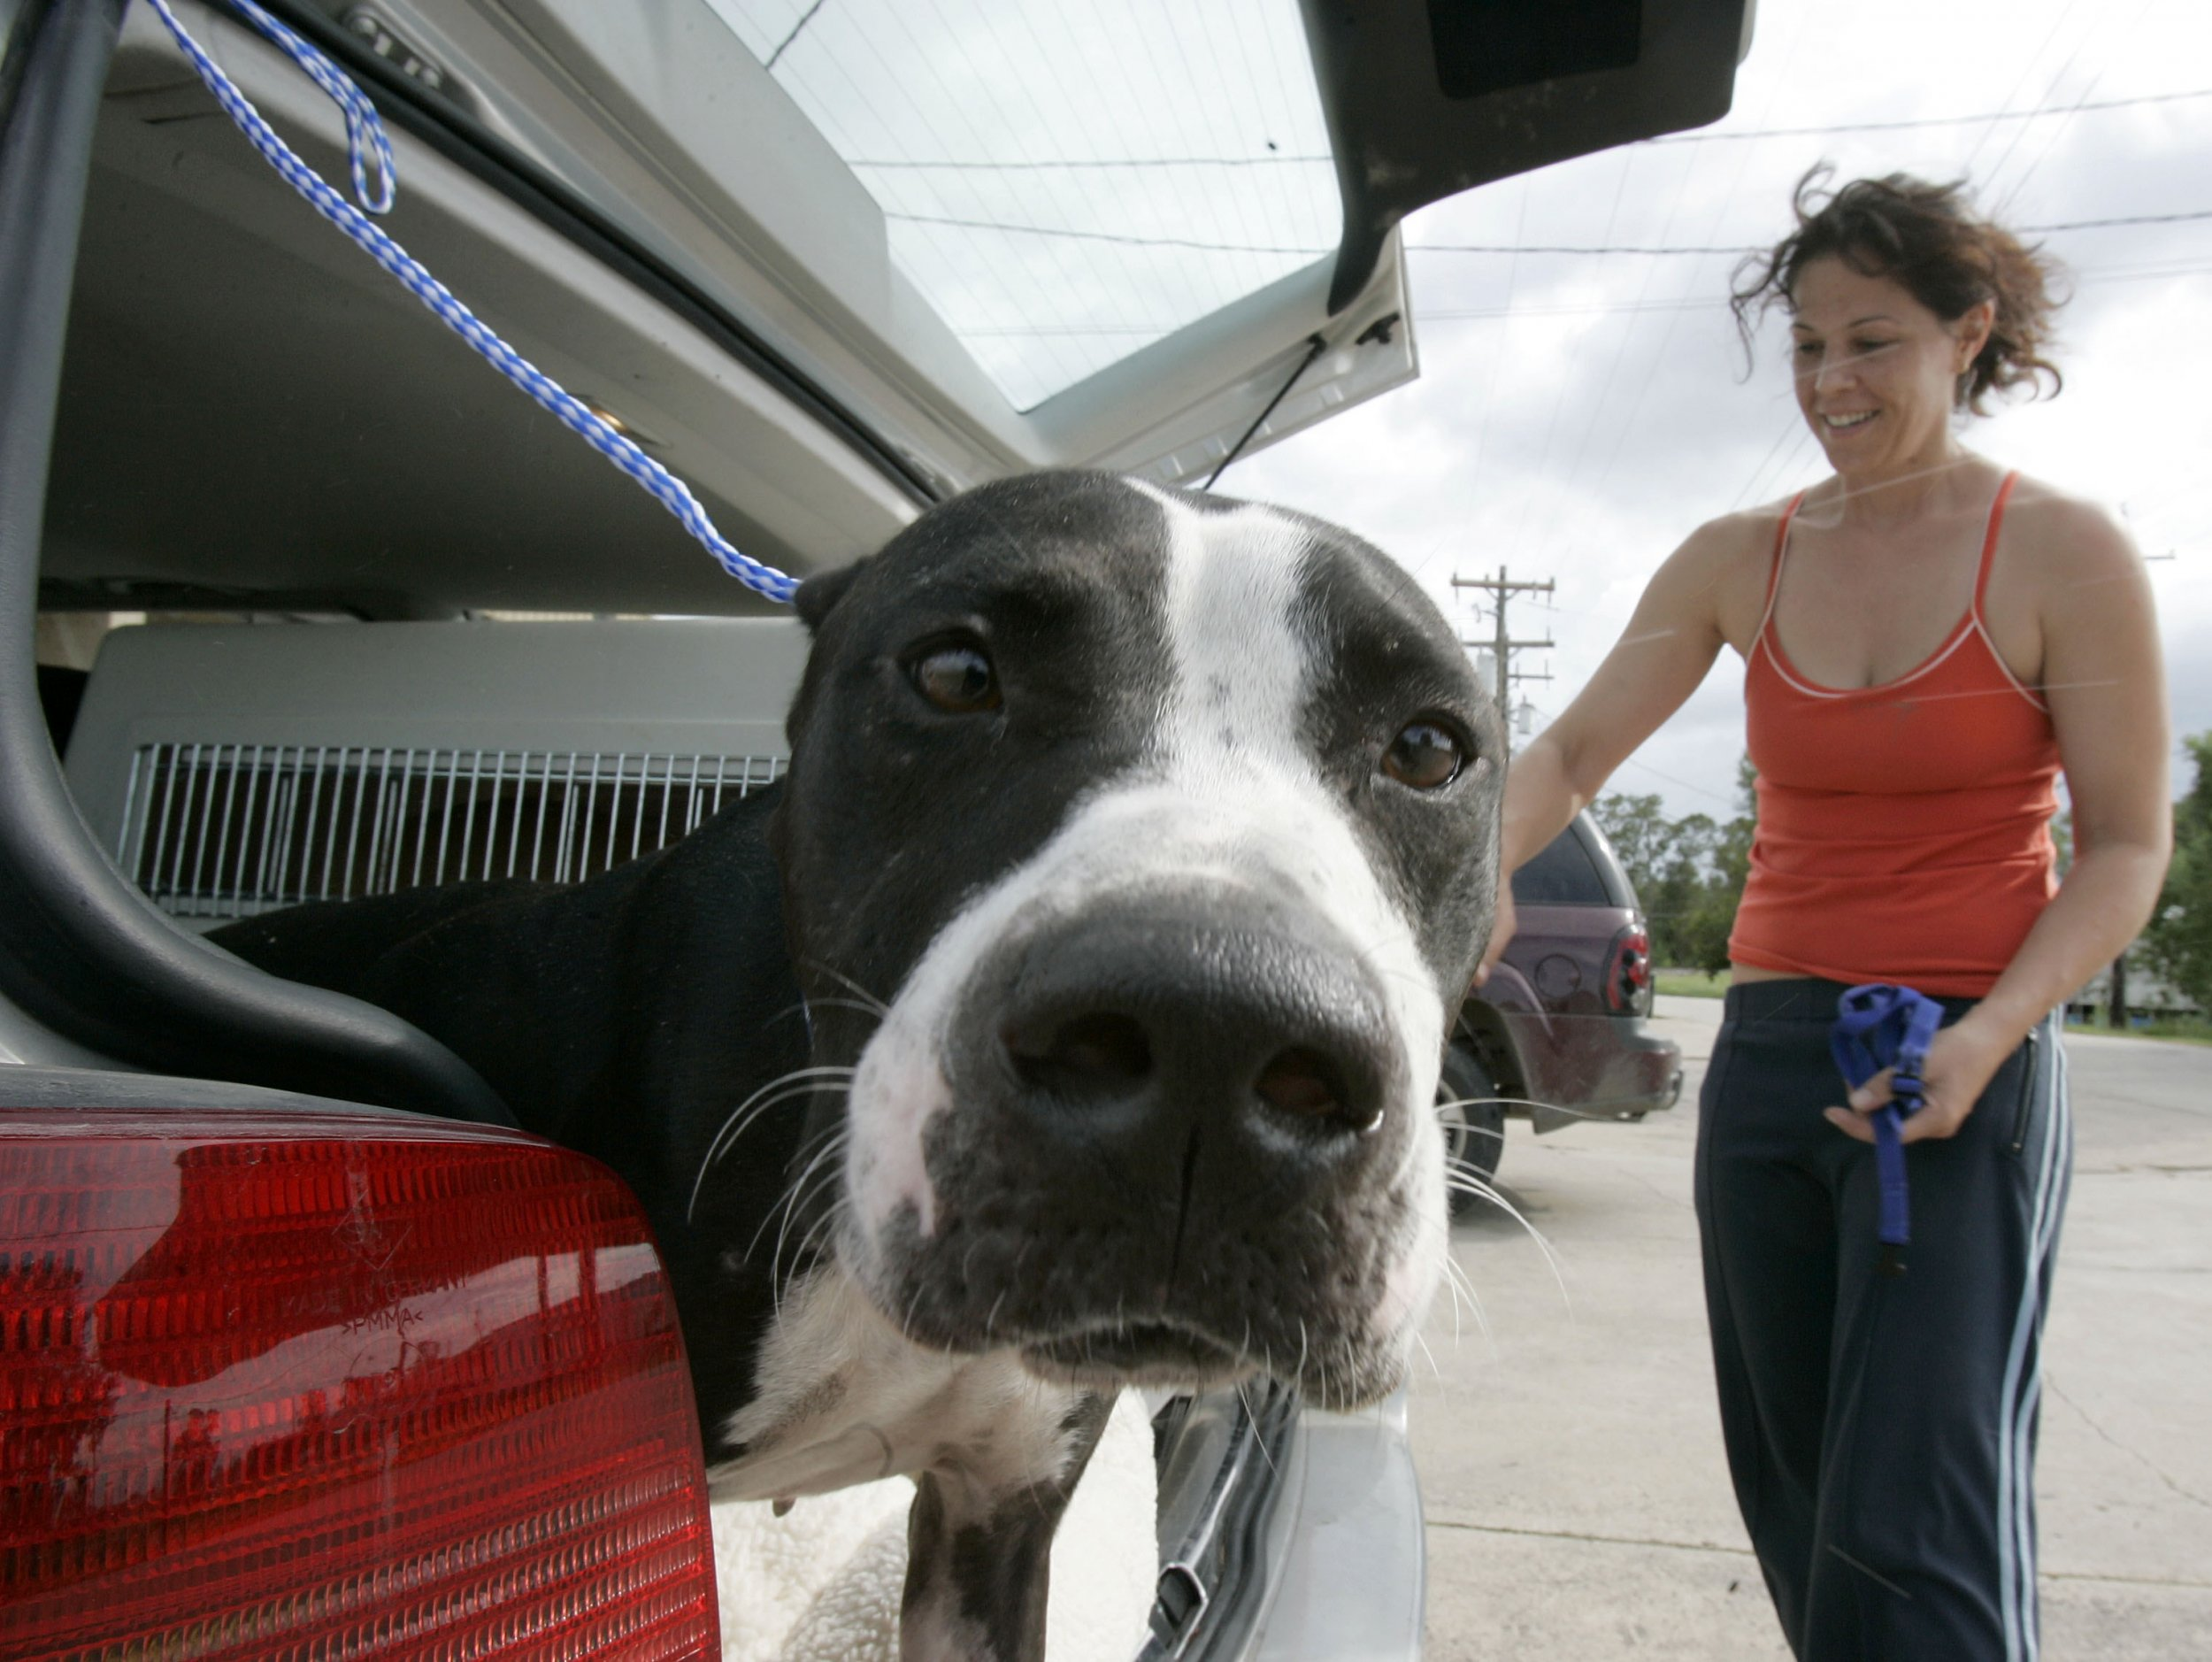 Labeling Dogs 'Pit Bulls' Keeps Them in Shelters: Study